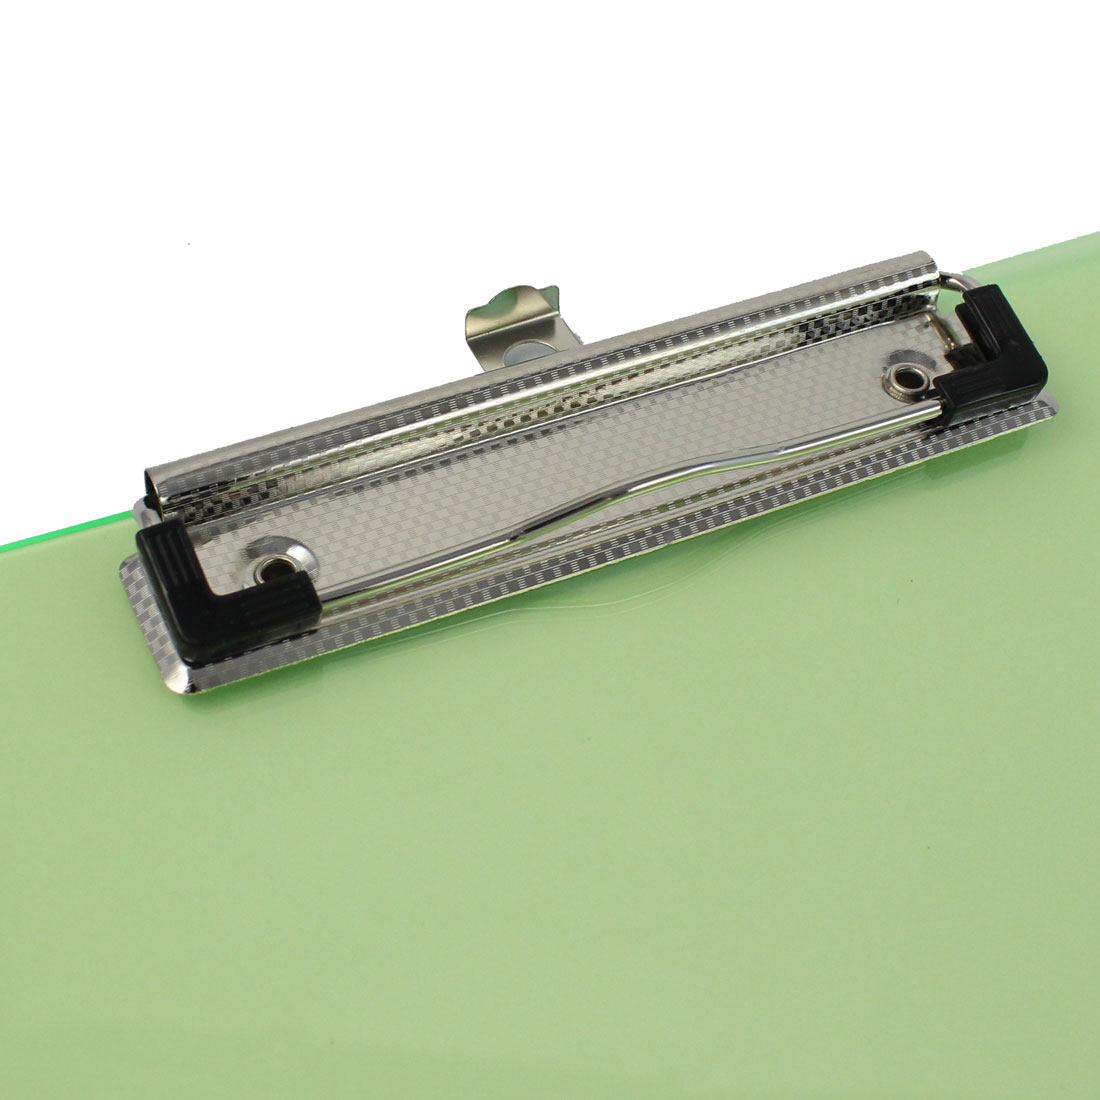 Office   A4 Paper File Note Holder Clamp Clip Board Hardboard Clear Green - image 1 of 3